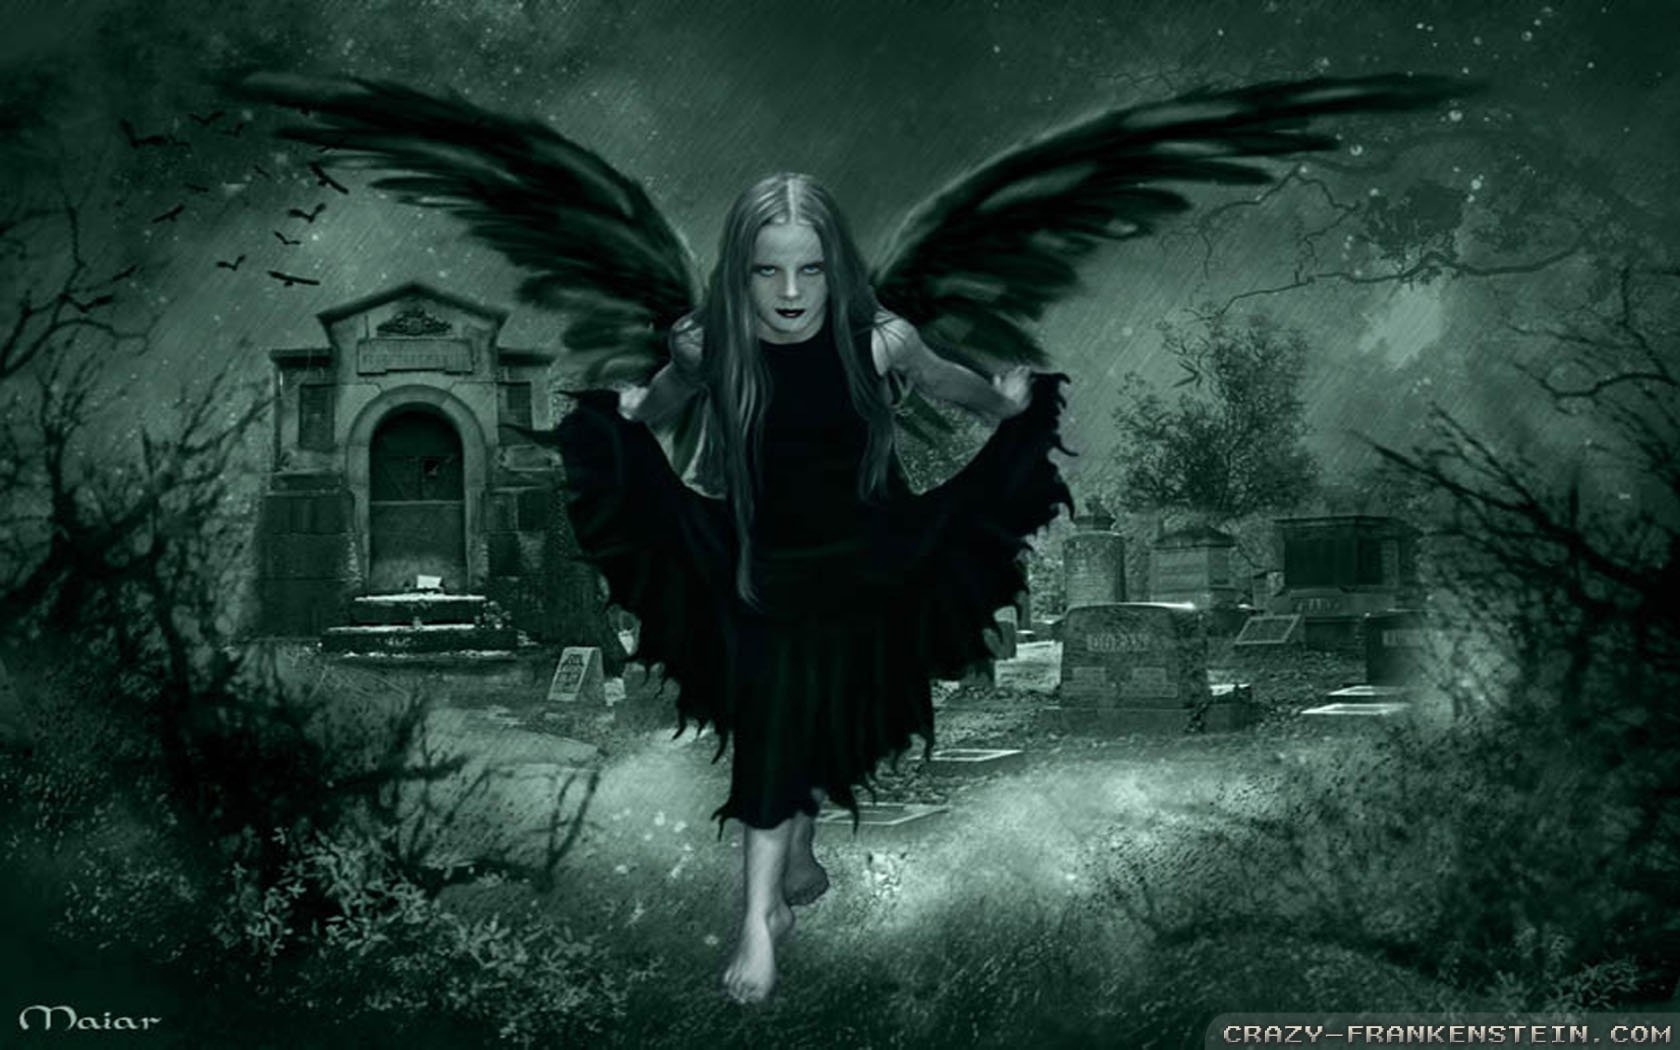 Dark Fairy Gothic Wallpapers 1680x1050 pixel Nature HD Wallpaper 1680x1050